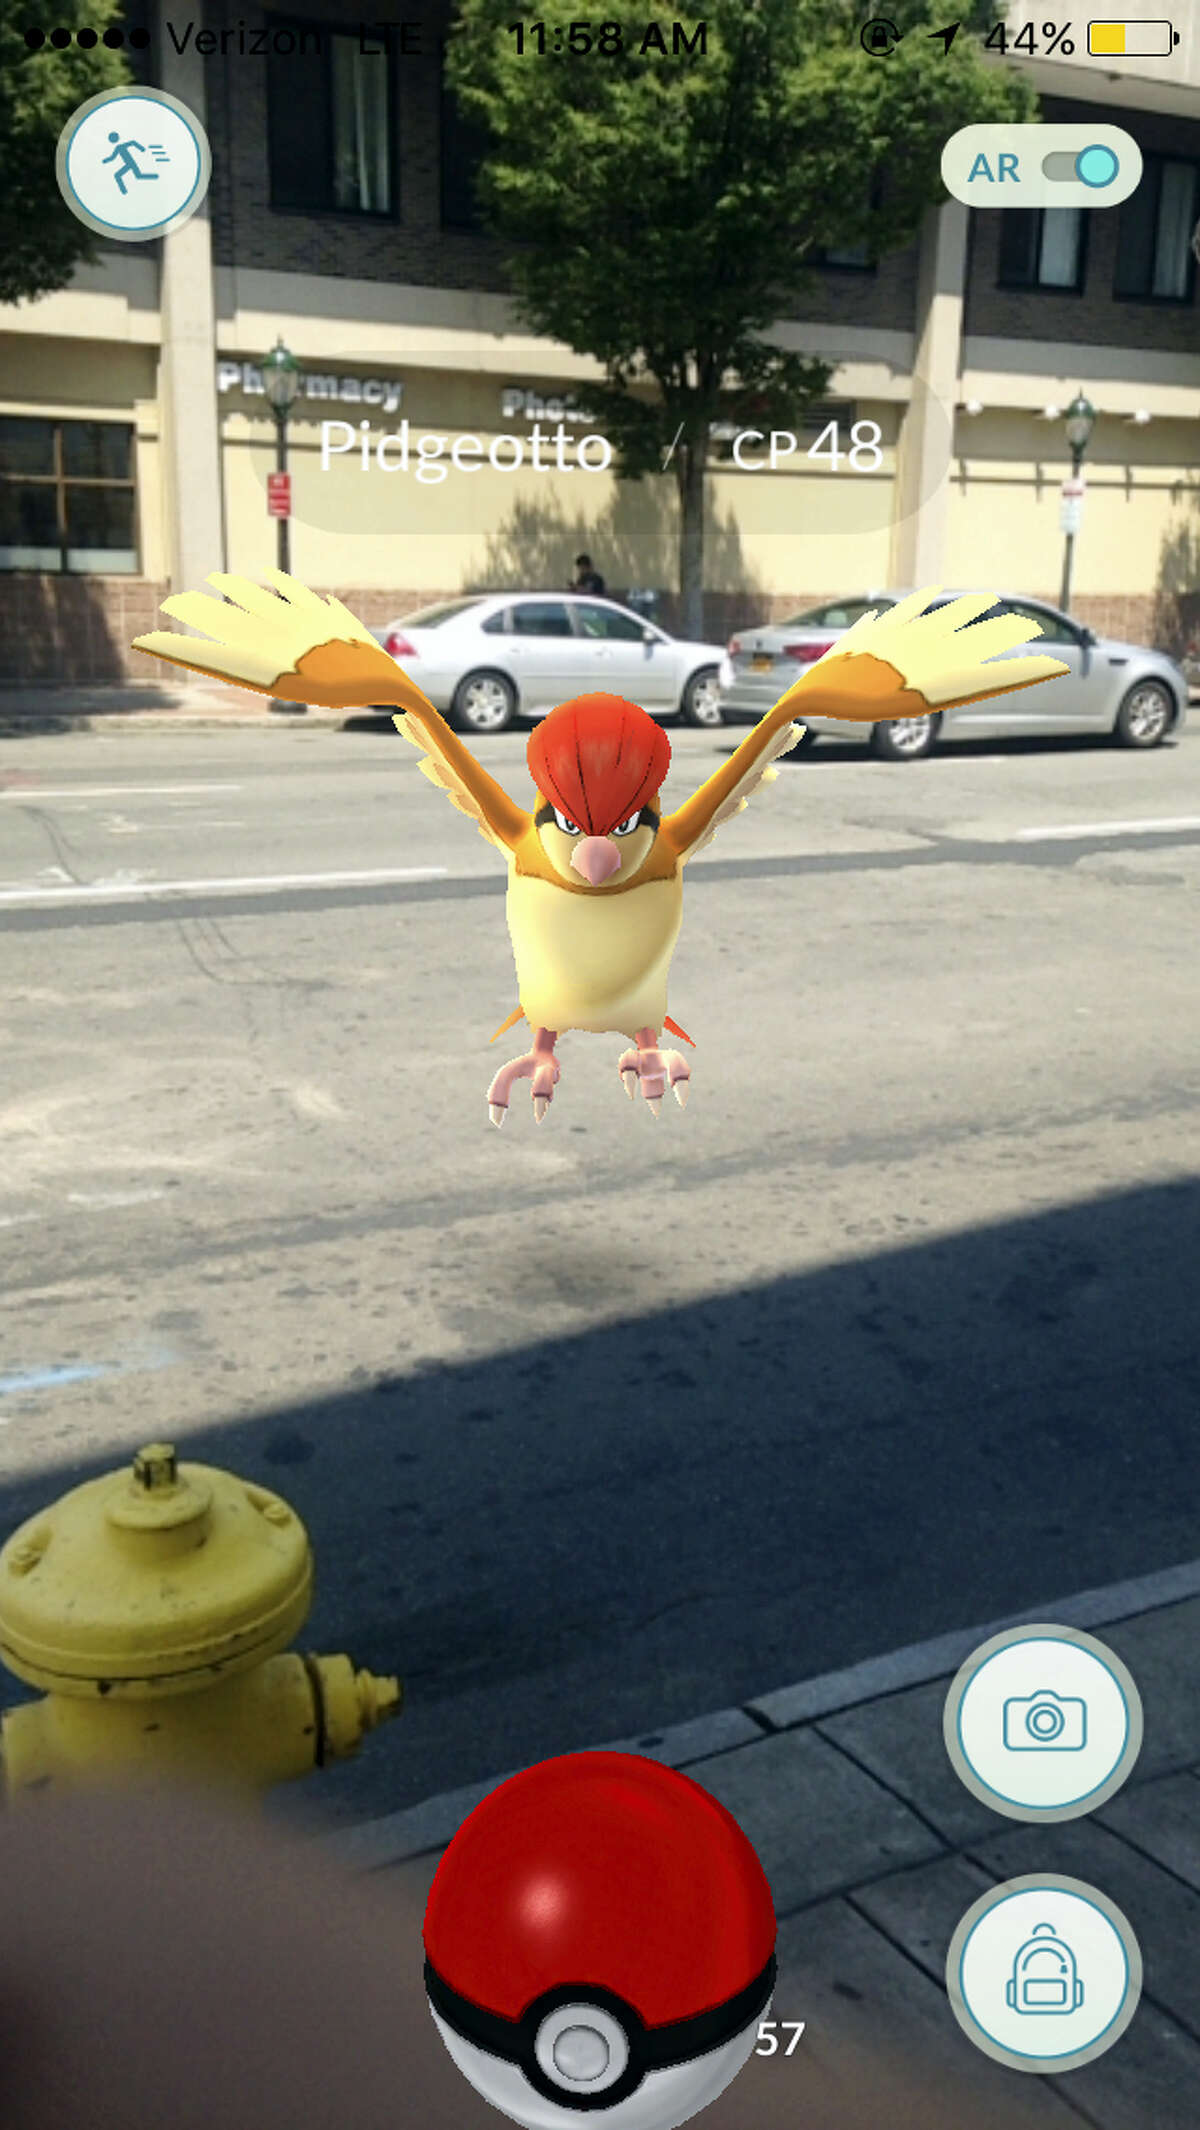 Screenshots from Pokemon Go game app show scenes from Downtown New Haven.